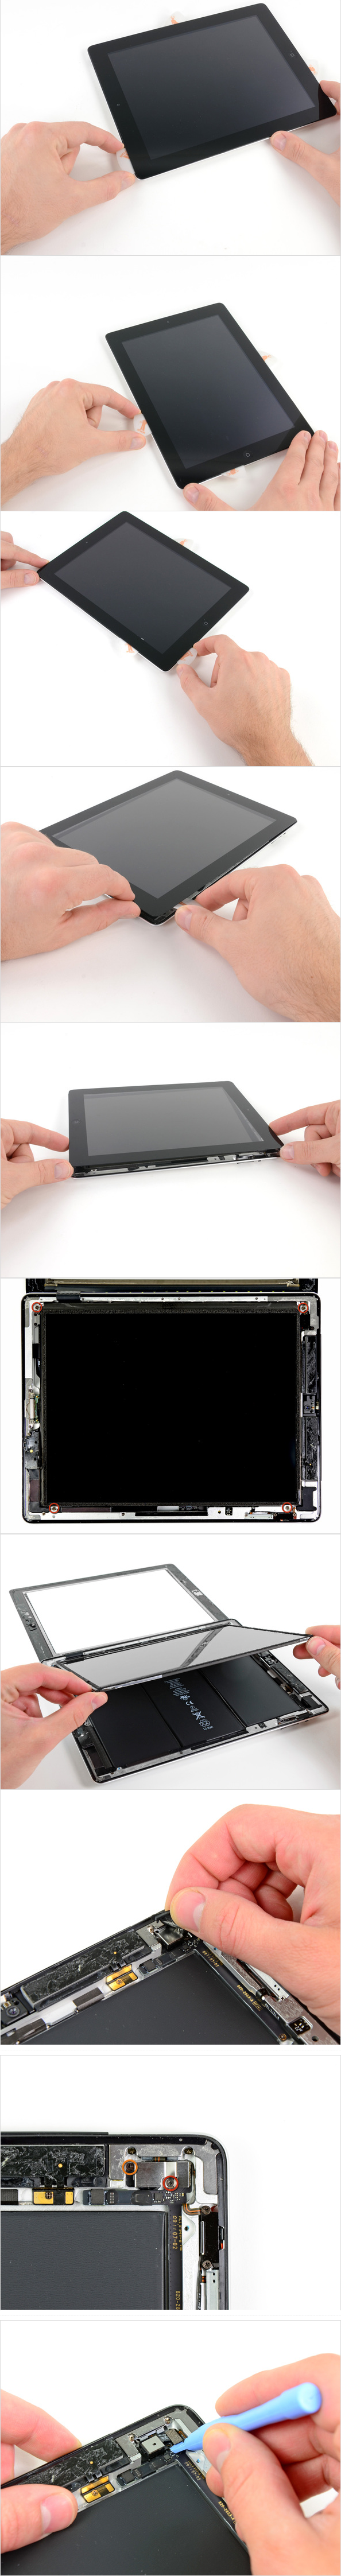 iPad+2+GSM+Rear+Camera+Replacement